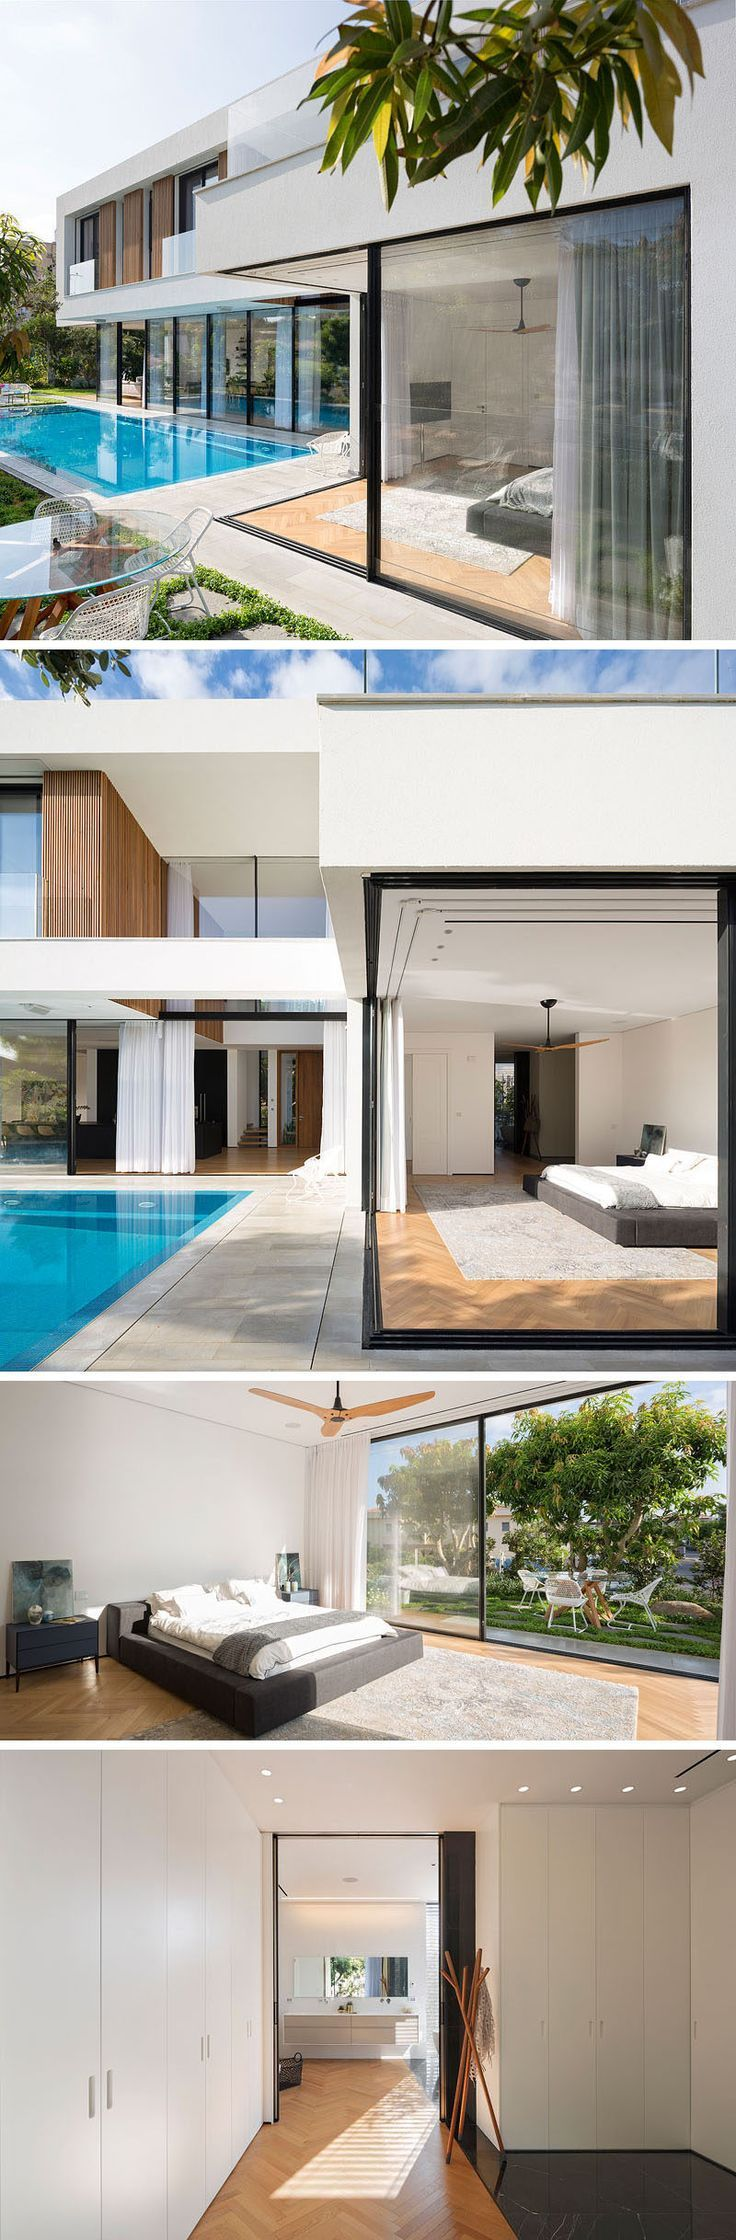 This bedroom, located at one end of the pool, also features a glass corner with sliding glass doors that open up to the swimming pool and small outdoor dining area. Inside, there's a walk-through closet that leads to the ensuite bathroom.